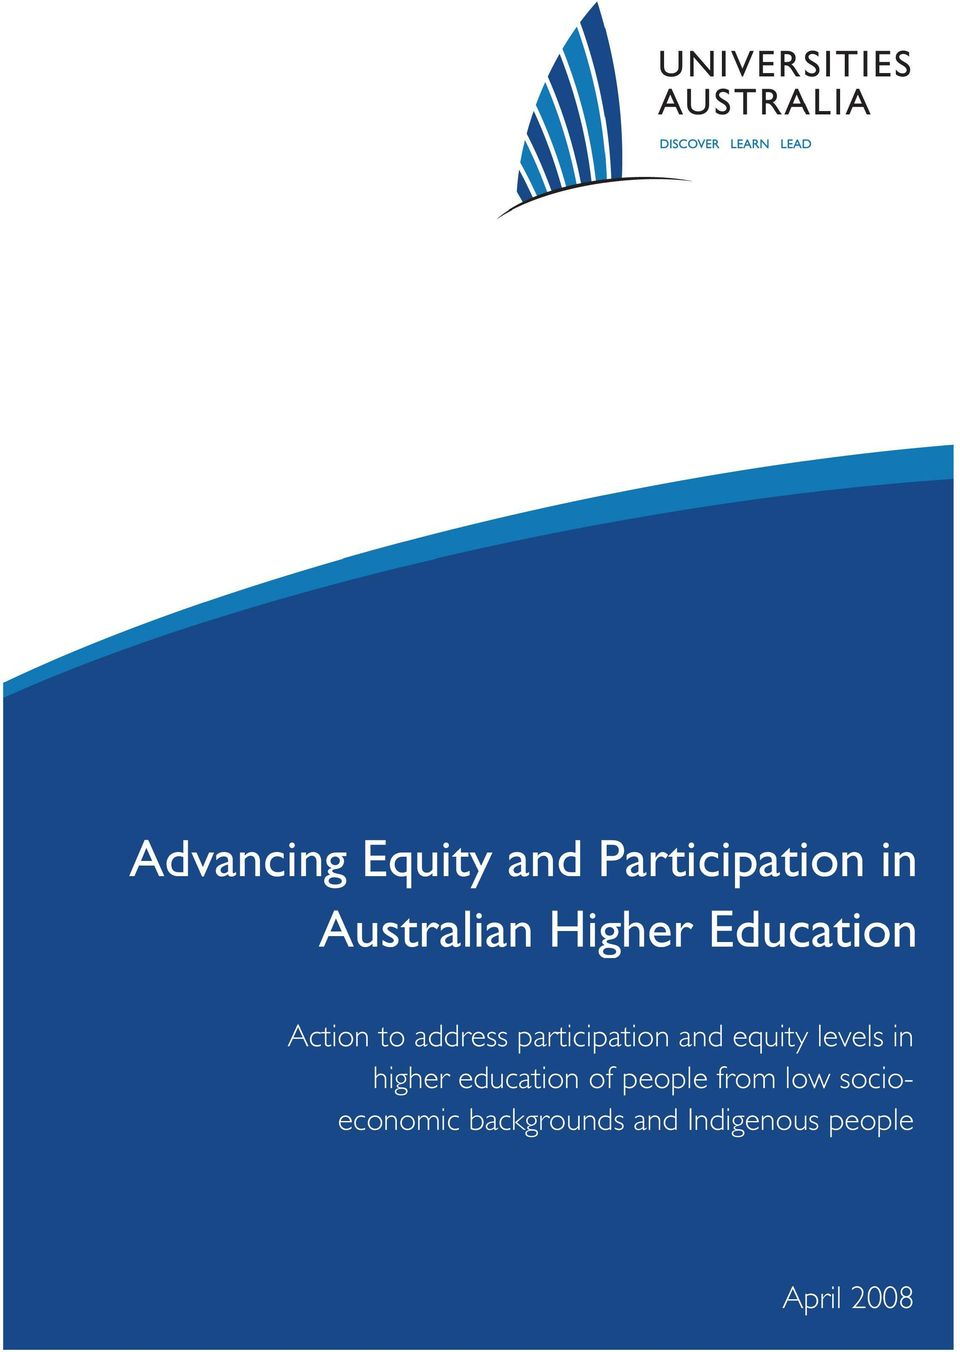 equity levels in higher education of people from low